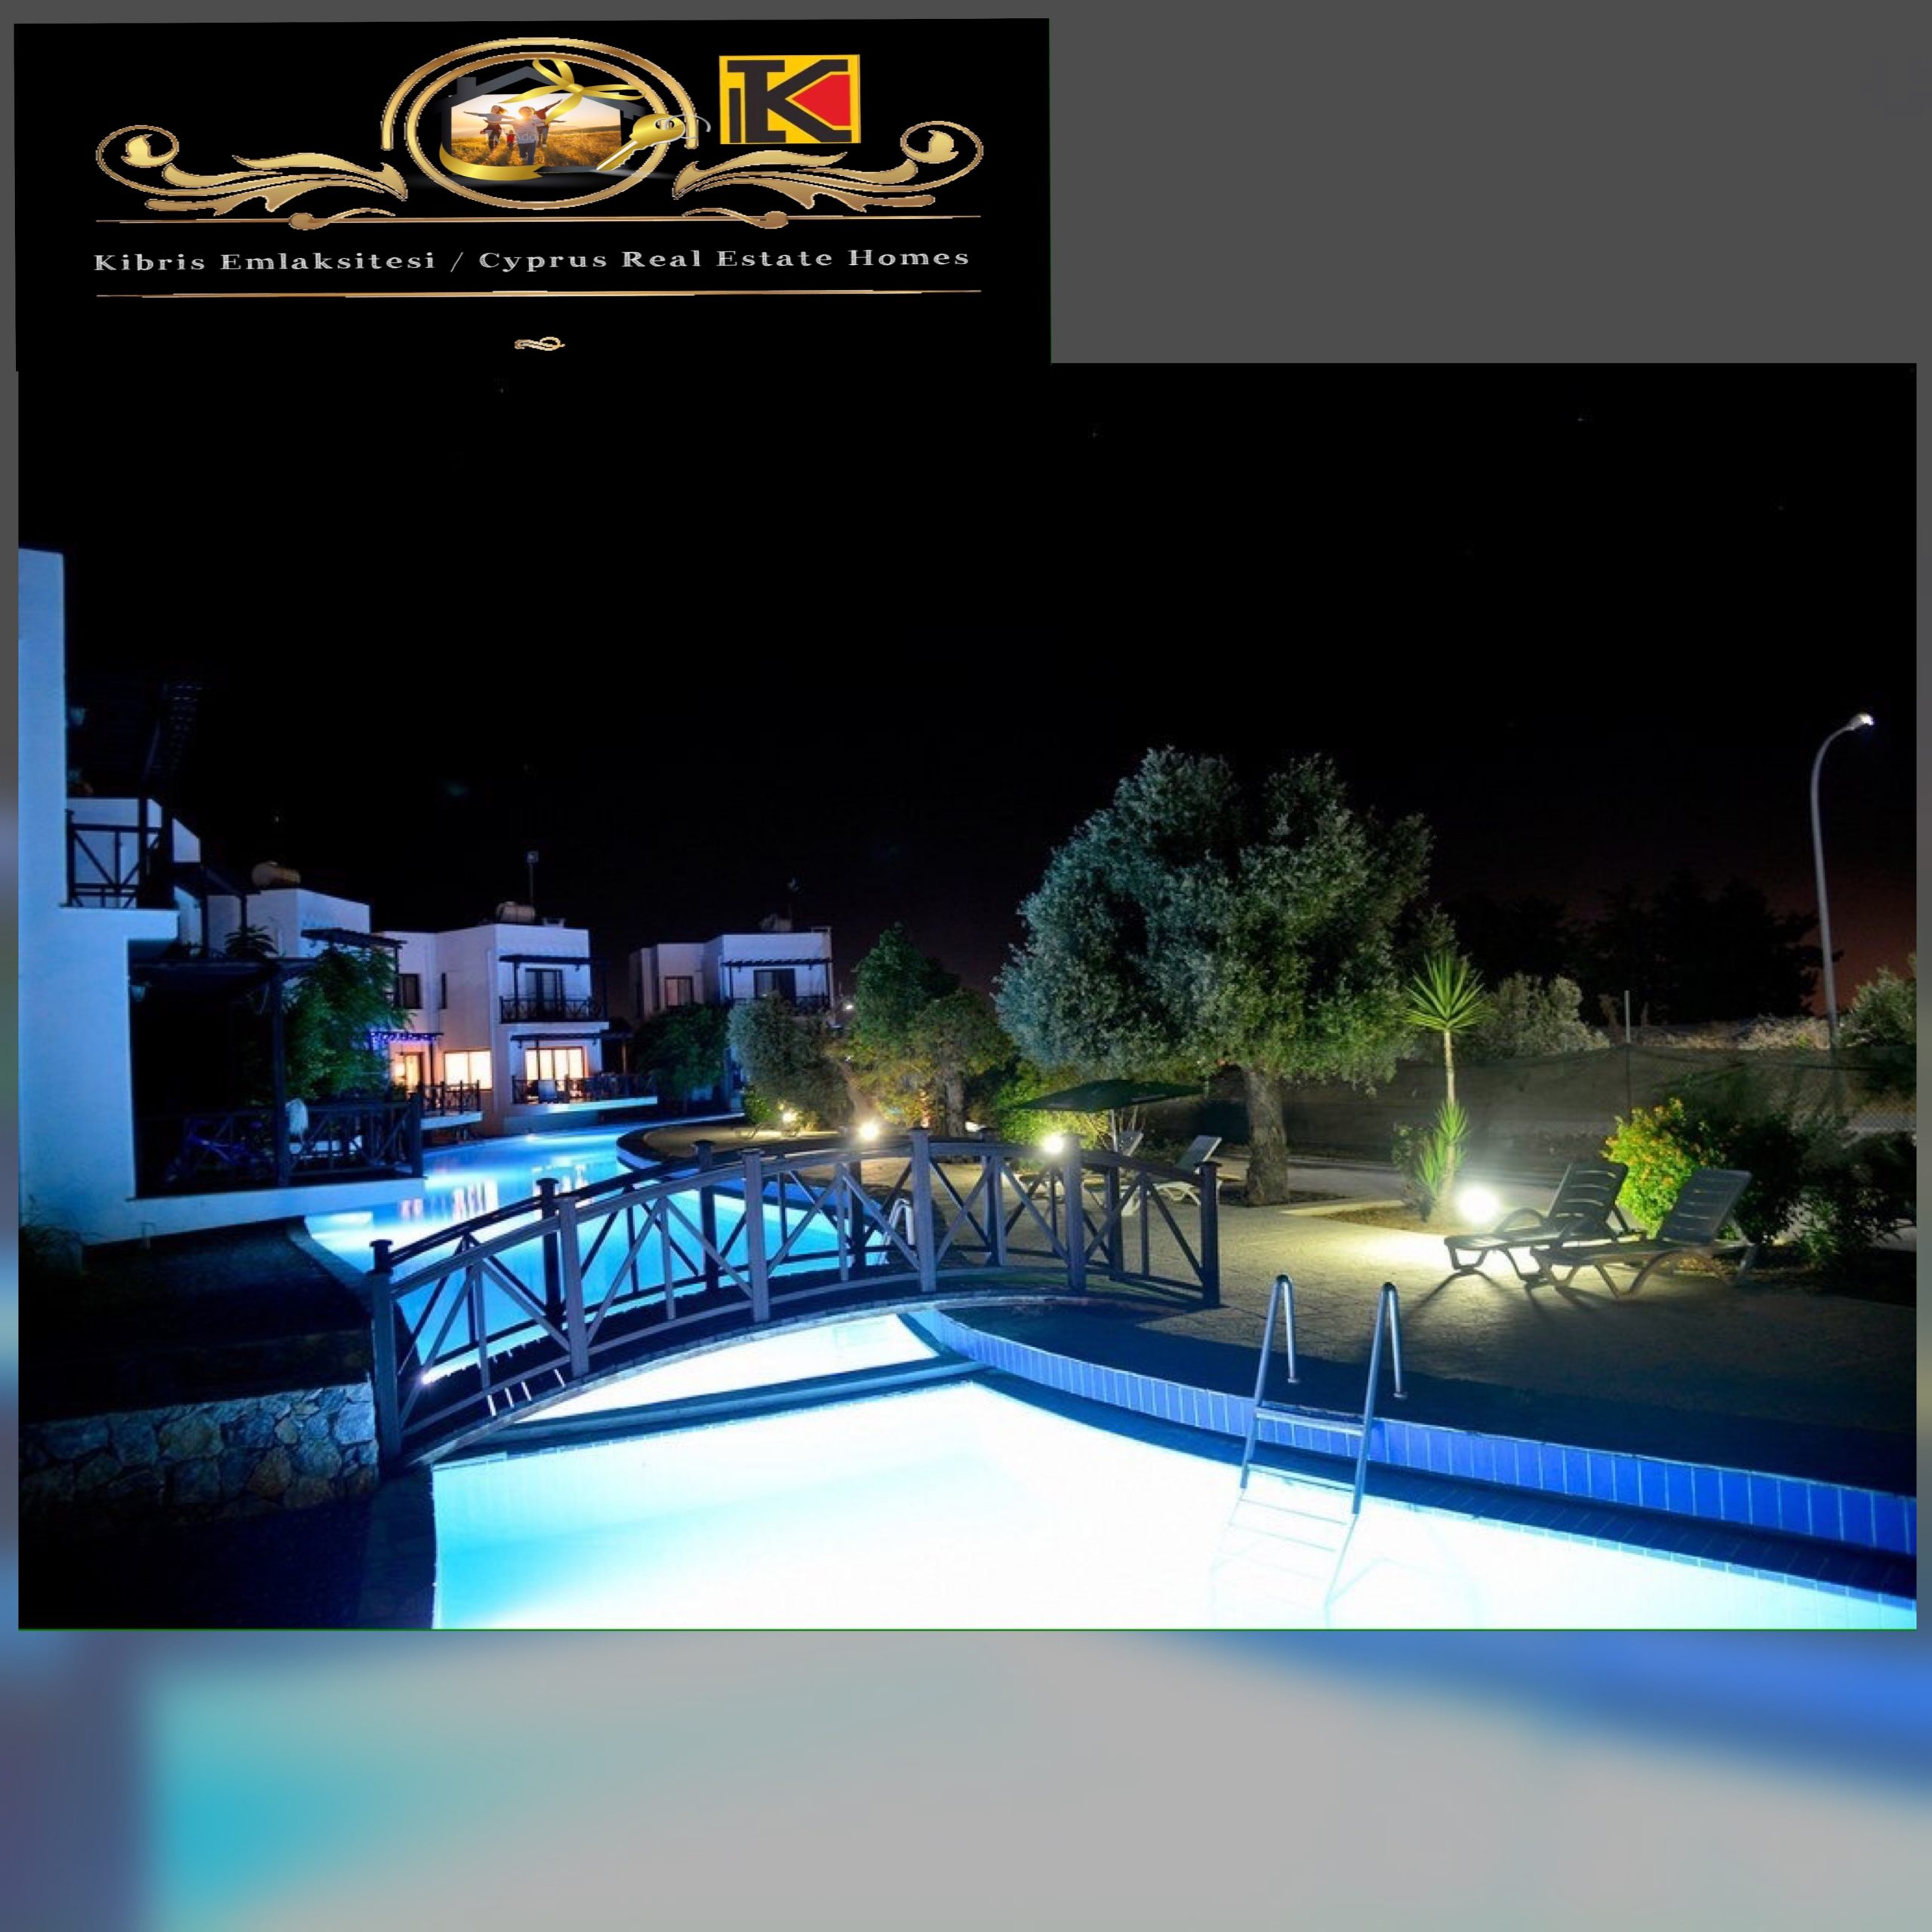 1,2,3 Bedroom Apartment And 3 Bedroom Villa For Rent Location Yesiltepe Girne